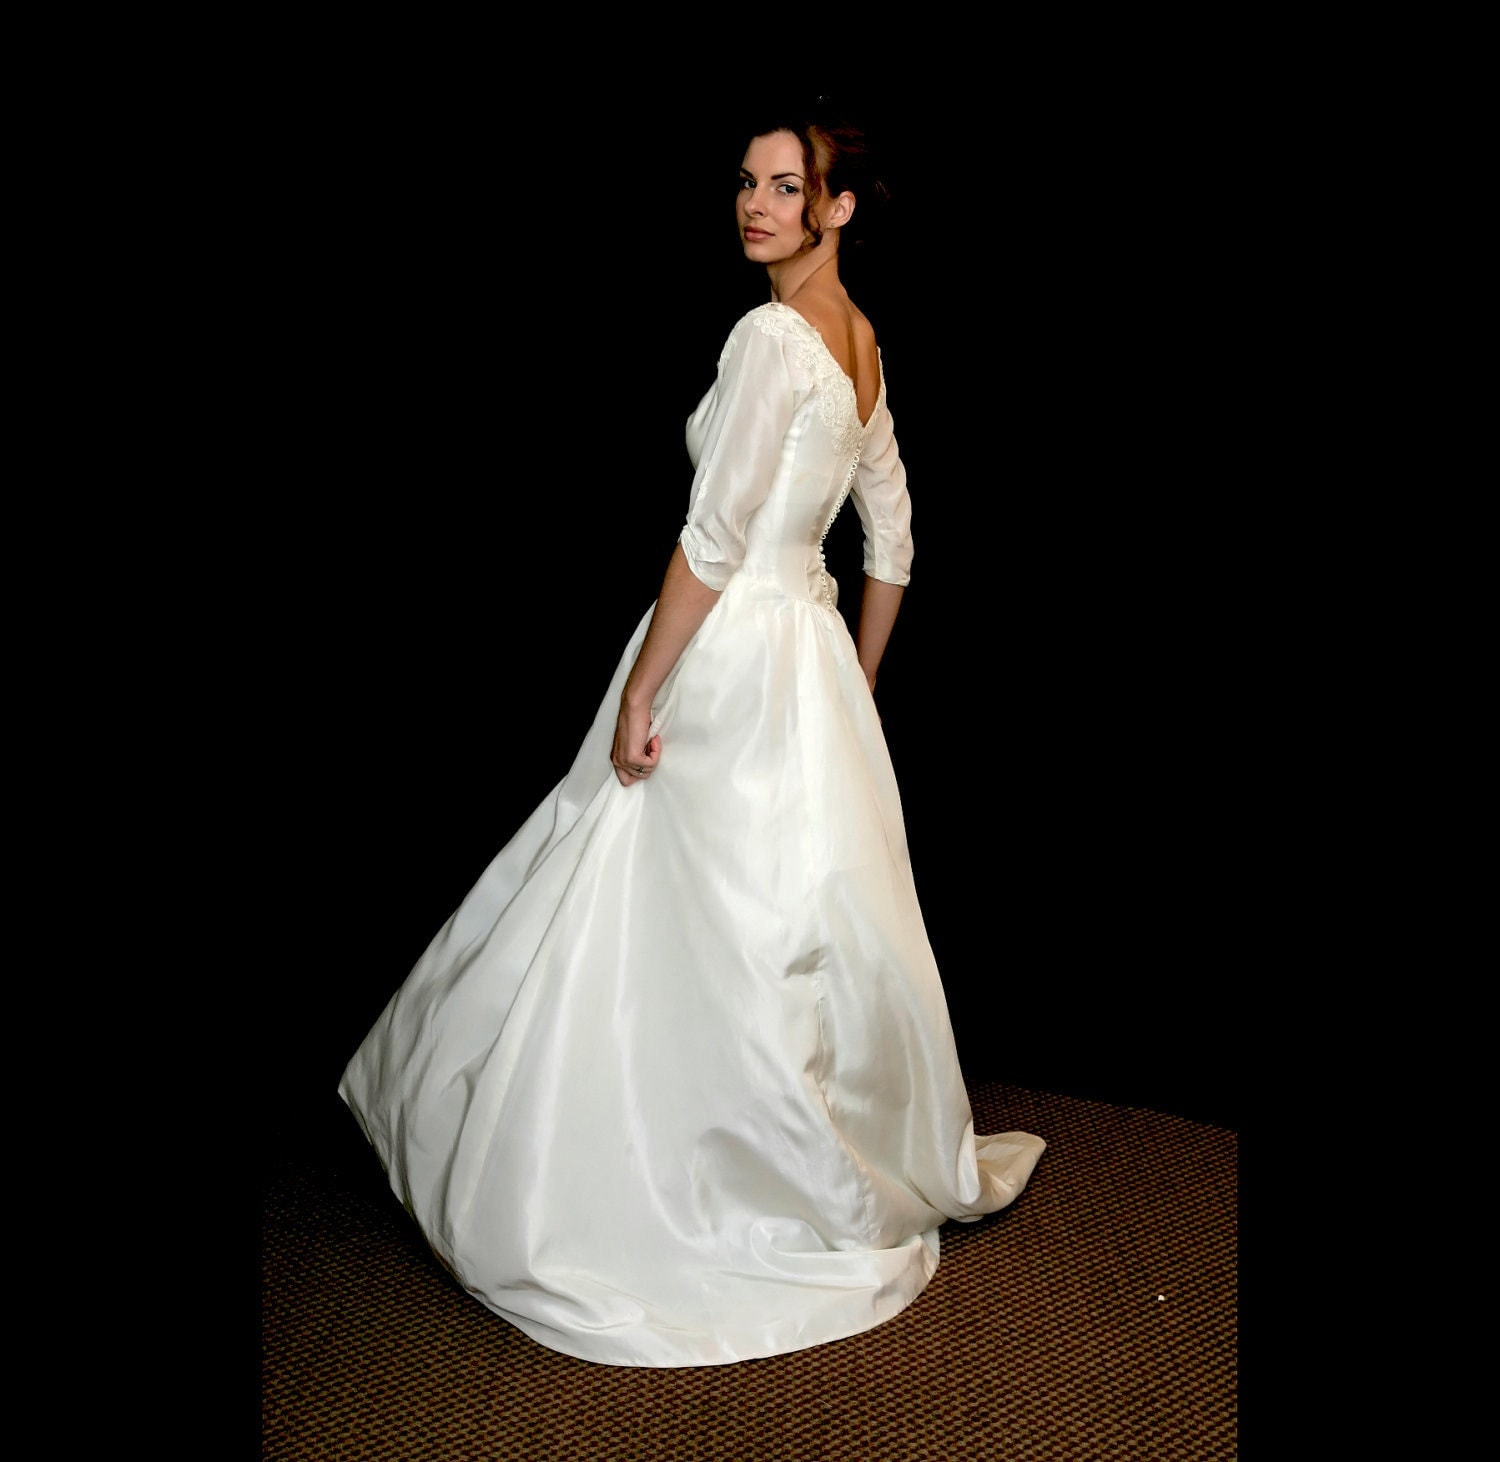 Priscilla of boston vintage wedding dress s to m by for Wedding dress stores boston